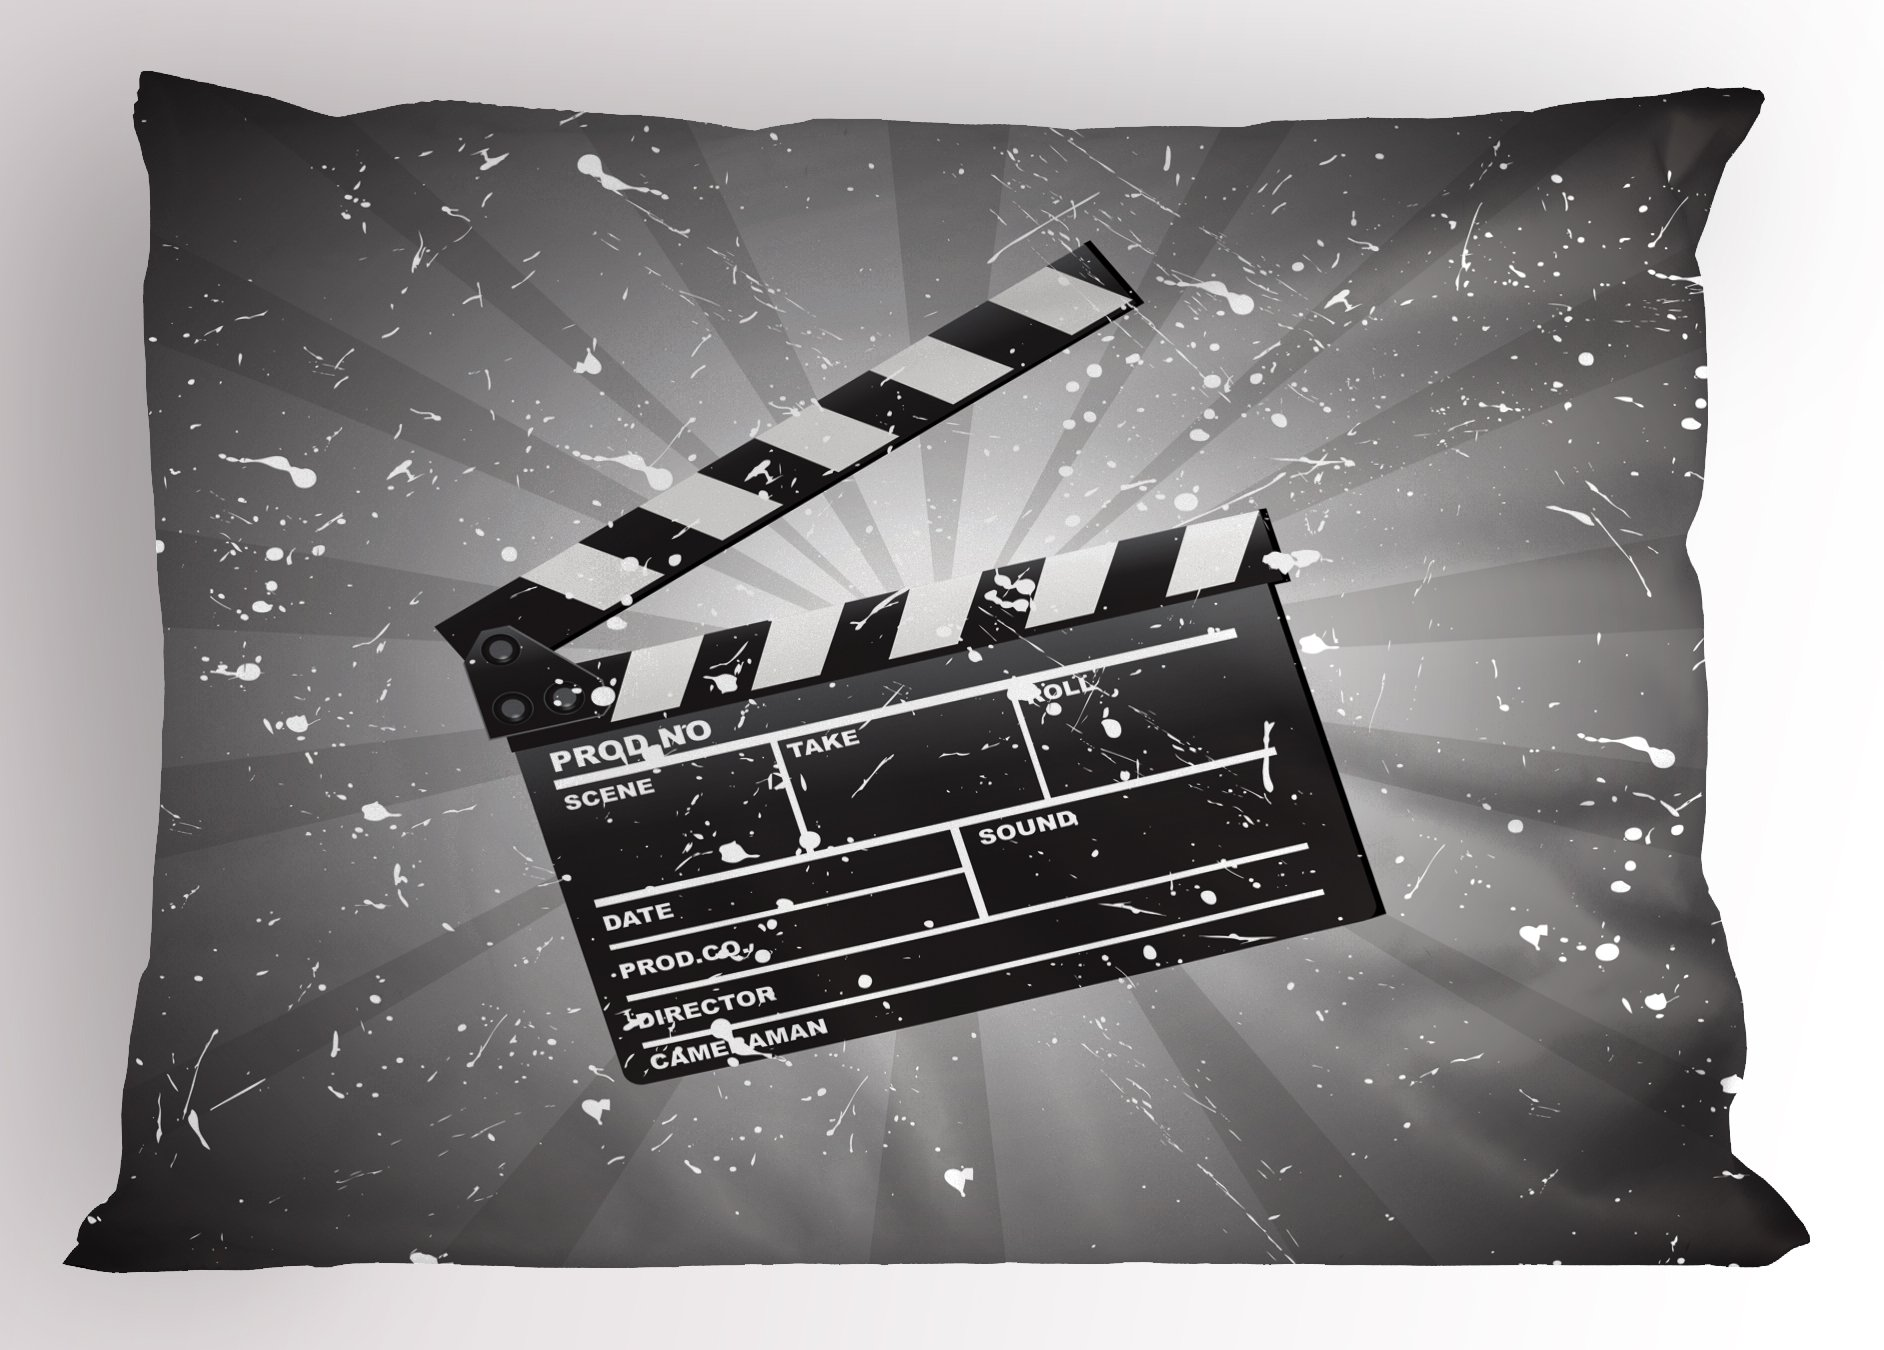 Ambesonne Movie Theater Pillow Sham, Clapper Board on Retro Backdrop with Grunge Effect Director Cut Scene, Decorative Standard Size Printed Pillowcase, 26 X 20 Inches, Grey Black White